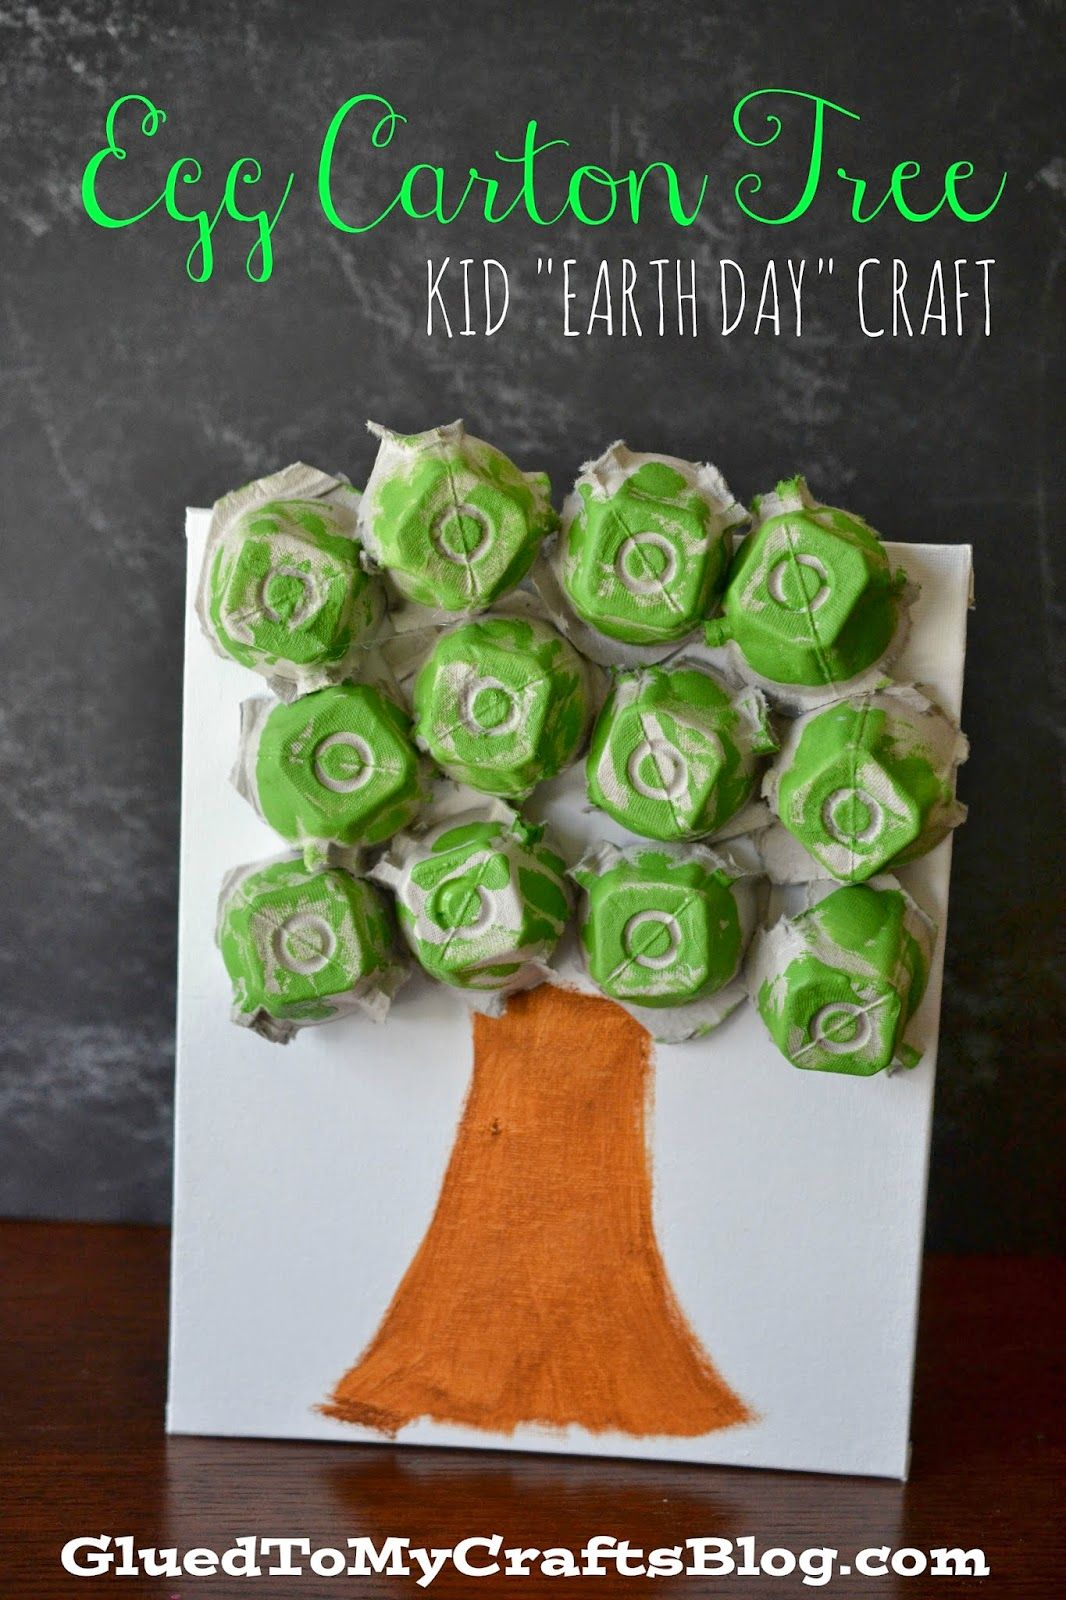 Egg carton tree kid 39 s earth day craft egg cartons for How to recycle egg cartons